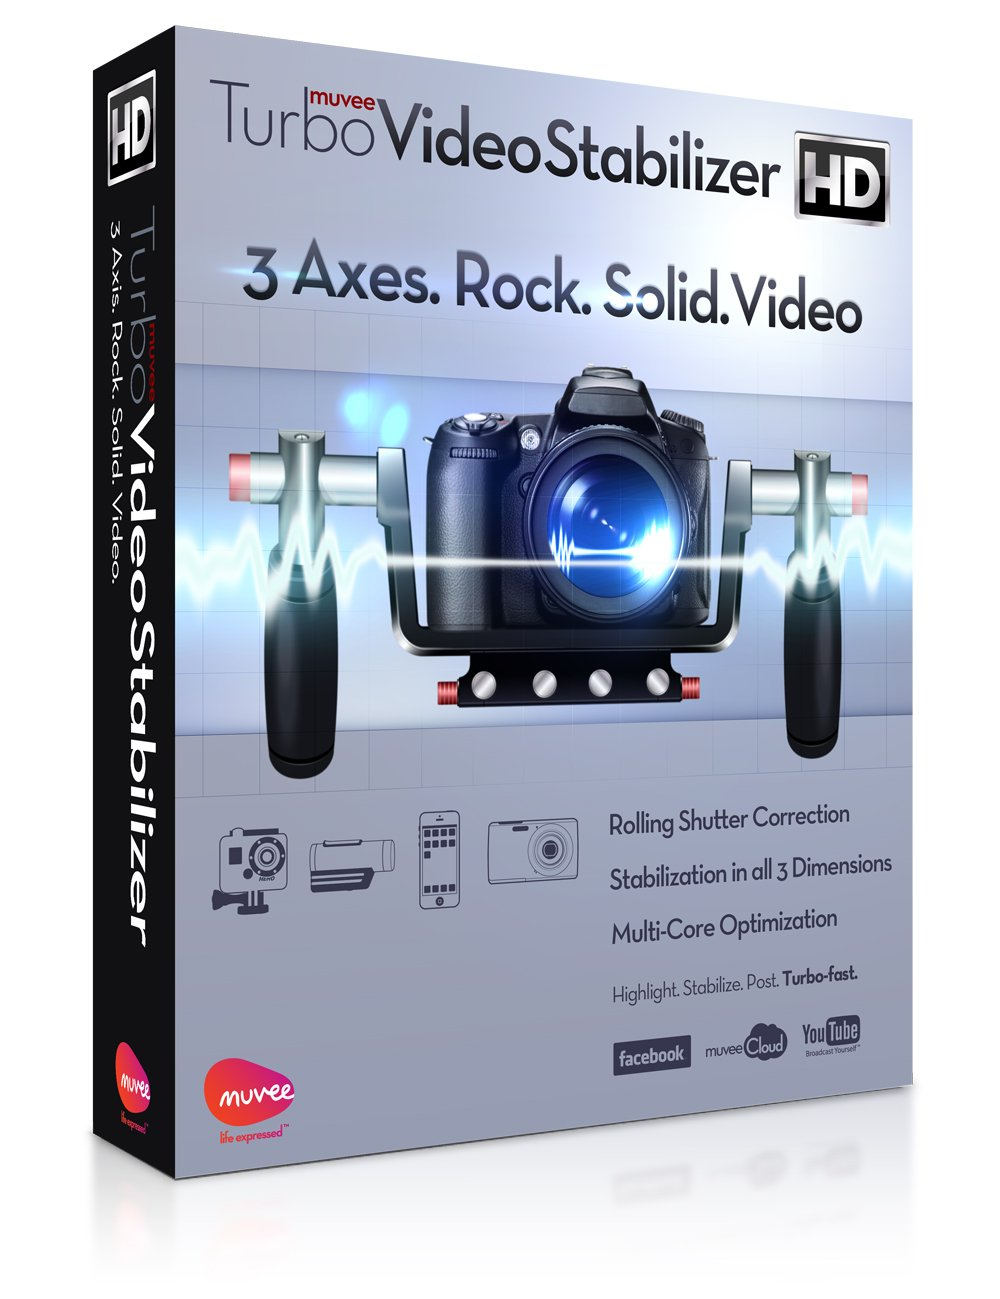 Amazon.com: Turbo Video Stabilizer - #1 Anti-shake Software for Consumers